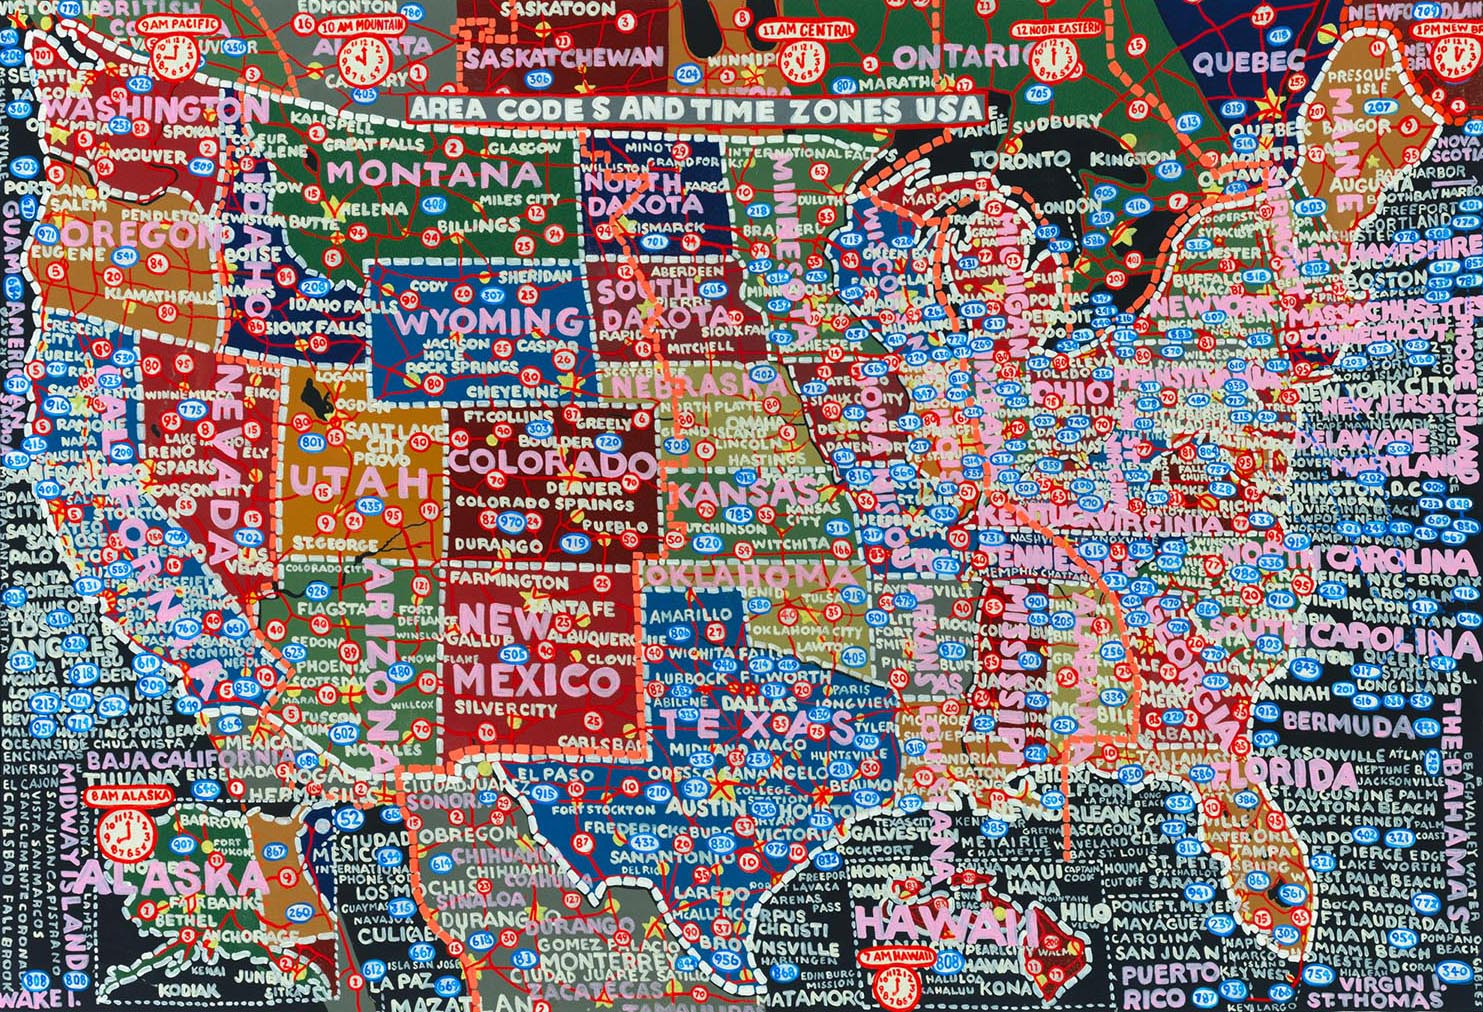 Paula Schers HandPainted SemiAccurate Maps of America CityLab